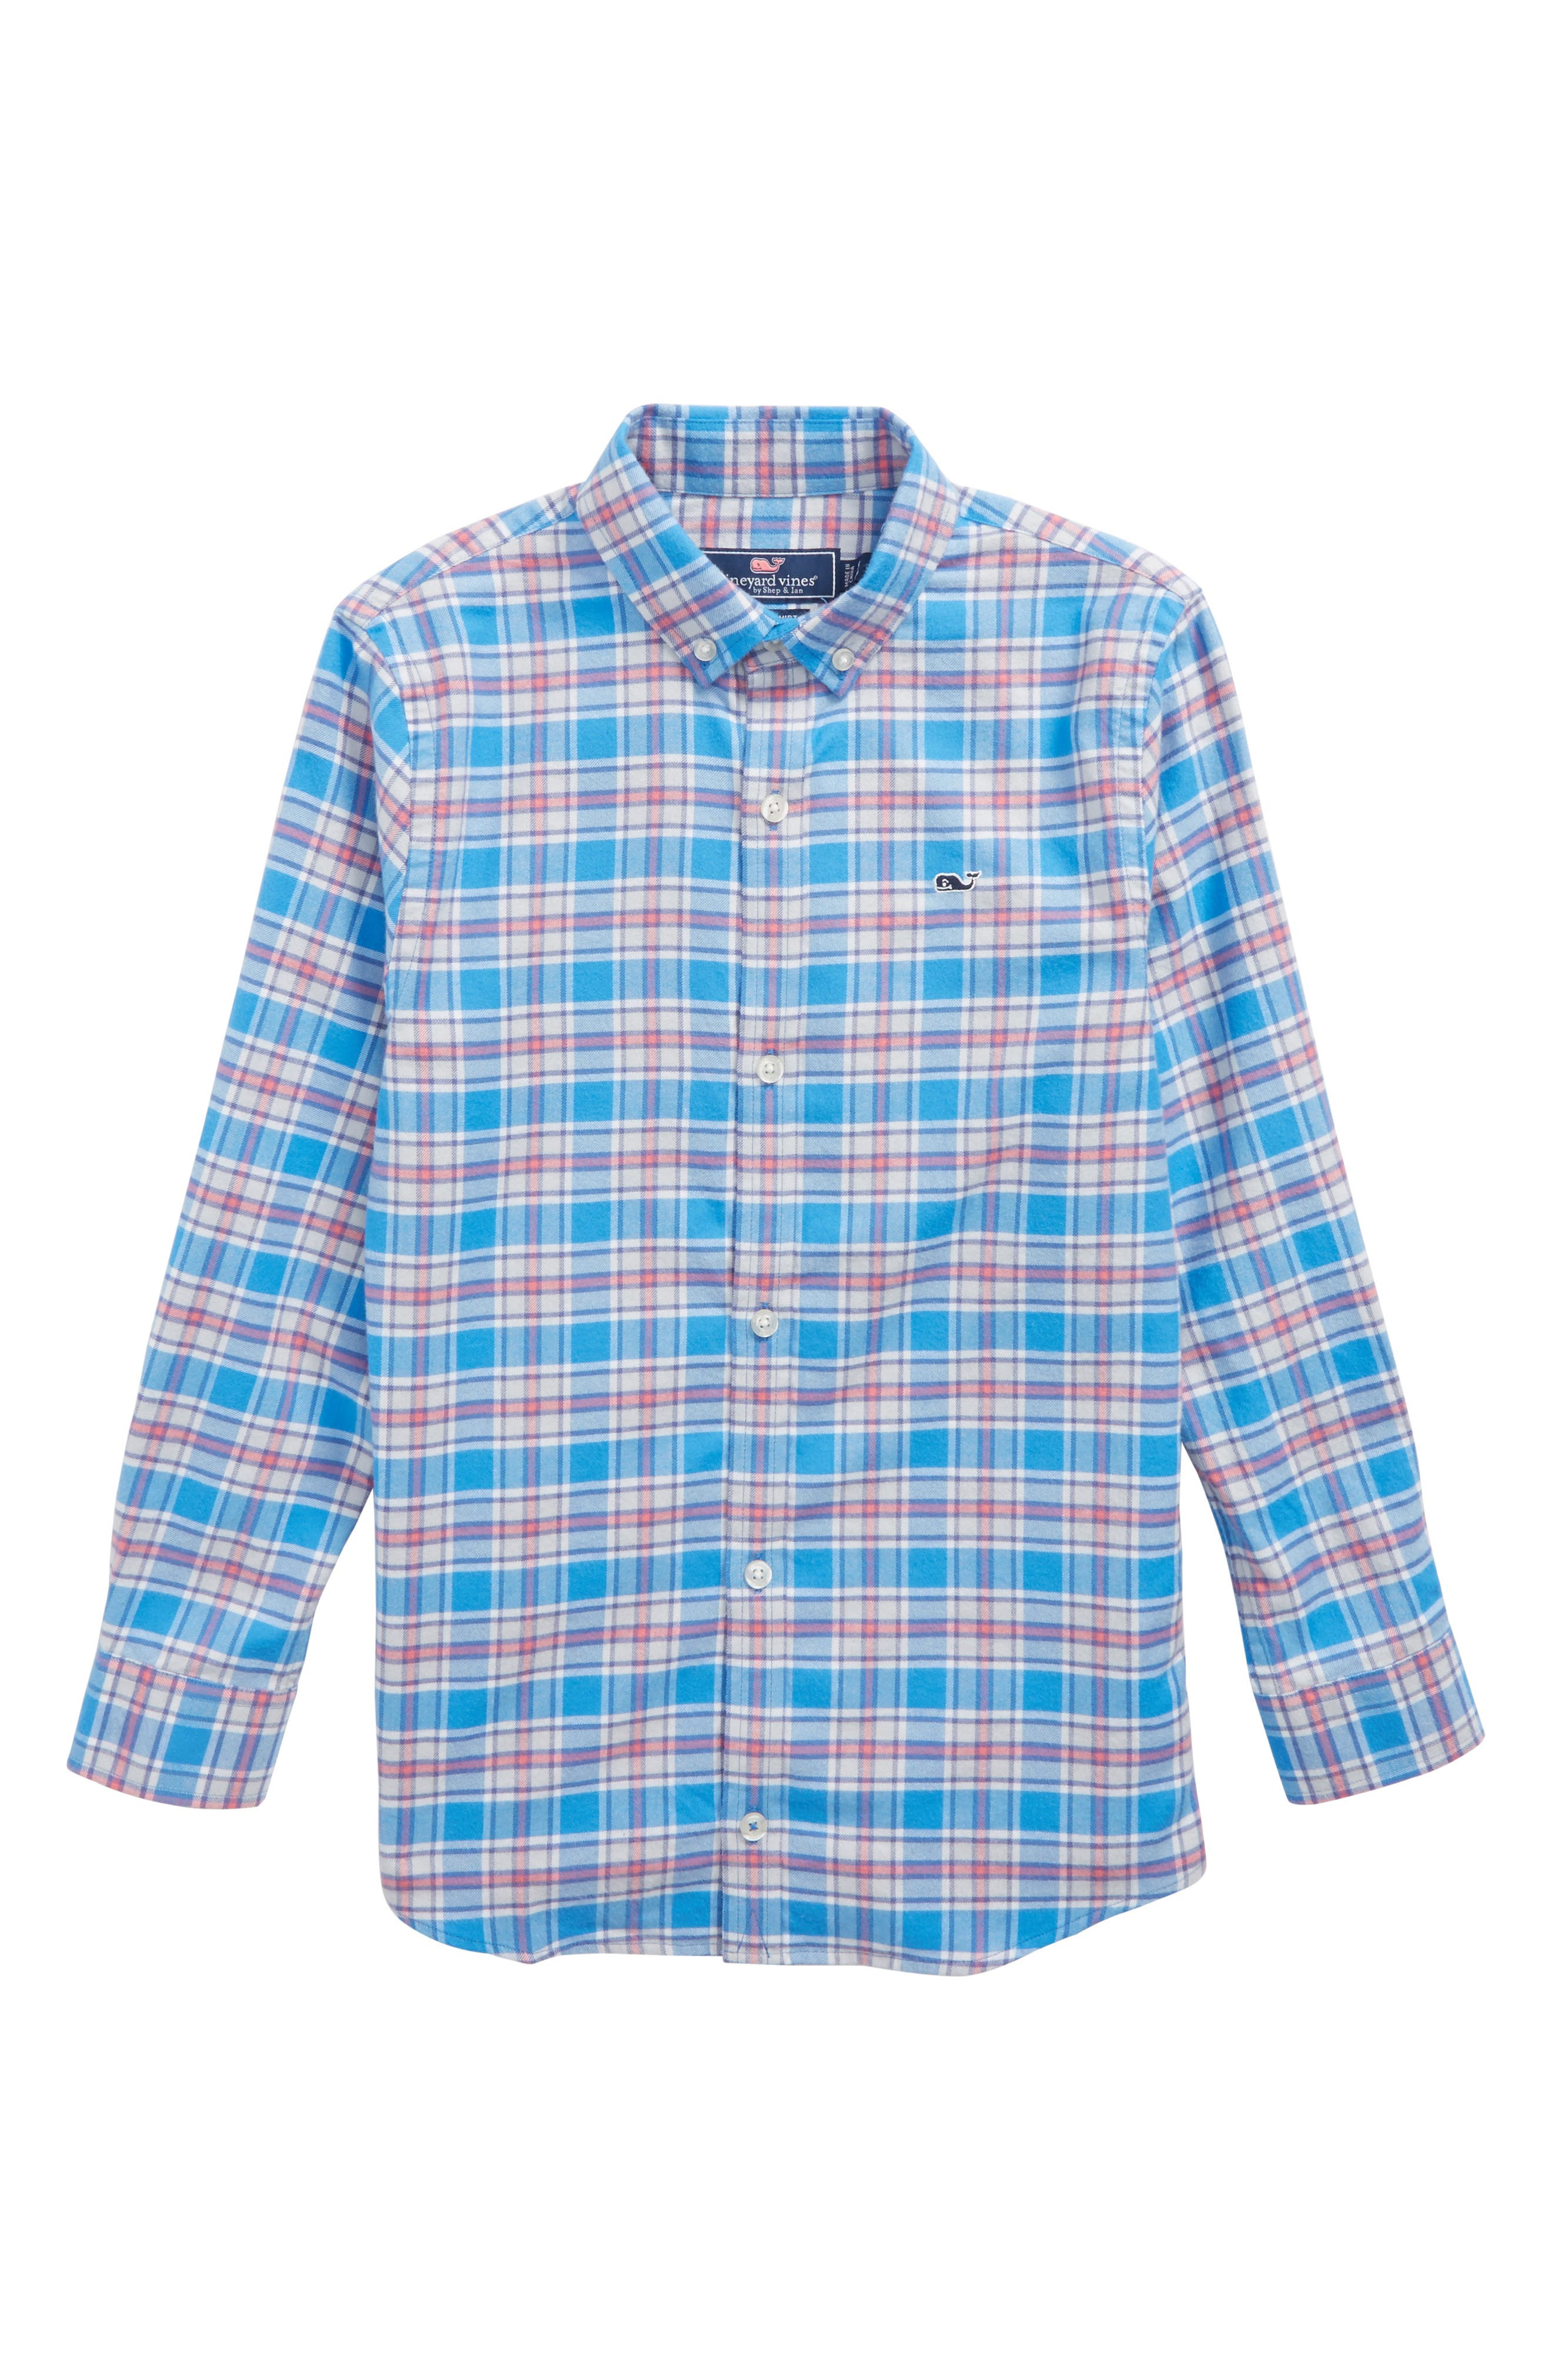 Sandy Point Plaid Whale Flannel Shirt,                             Main thumbnail 1, color,                             Hull Blue